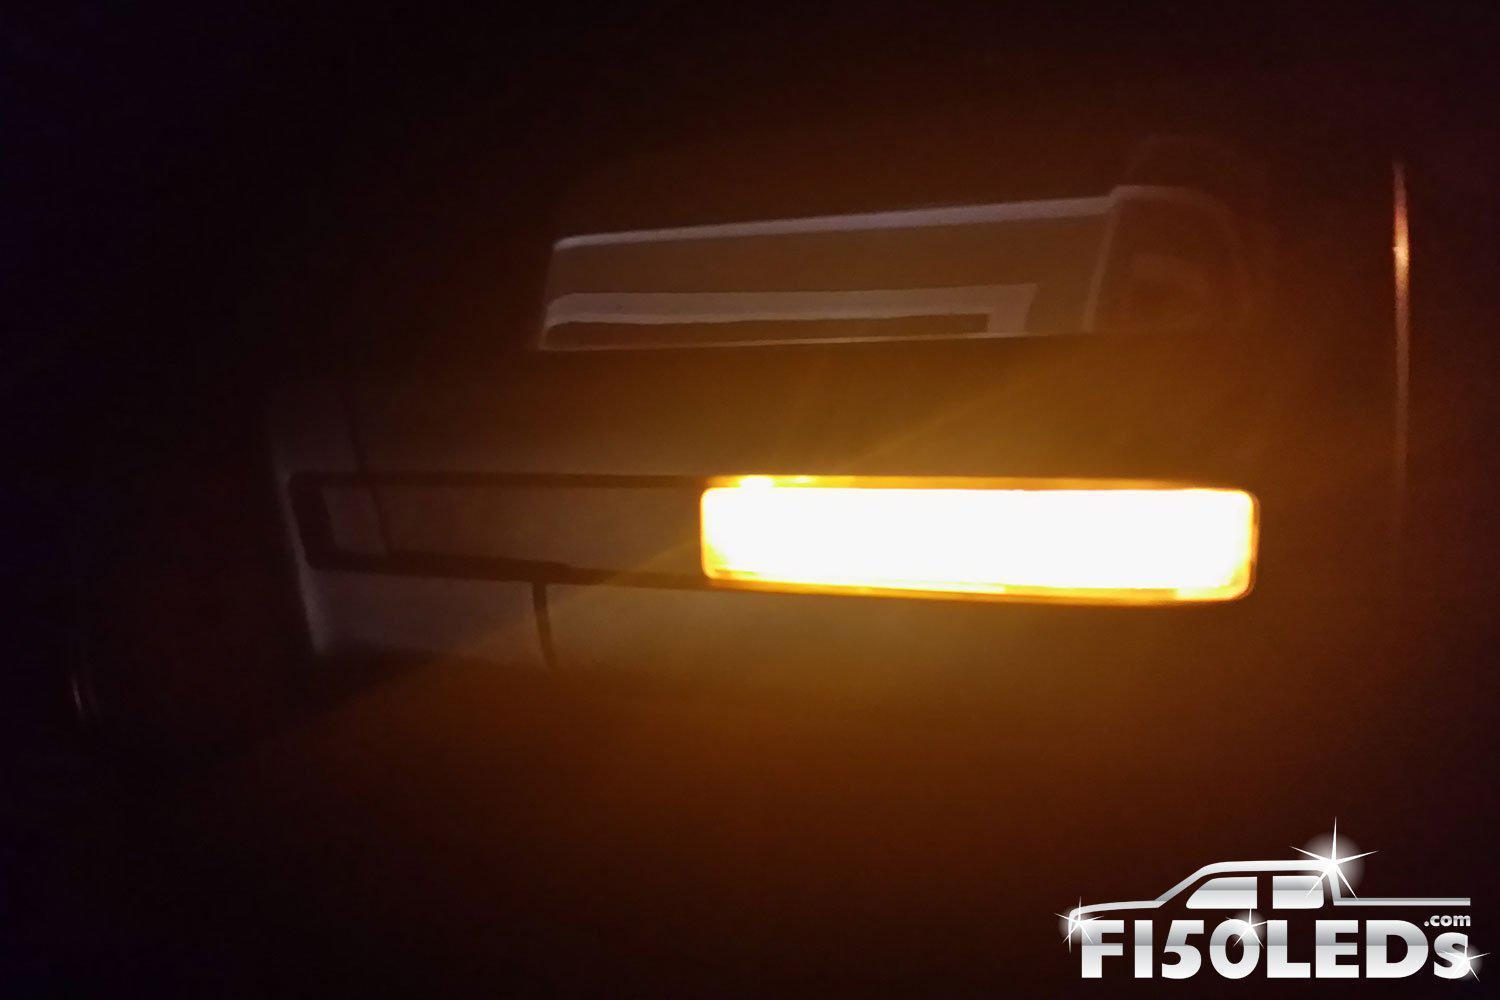 2010-14 F150 RAPTOR LED Turn Signal Mirror Kit-2010-14 F150 RAPTOR LEDS-F150LEDs.com